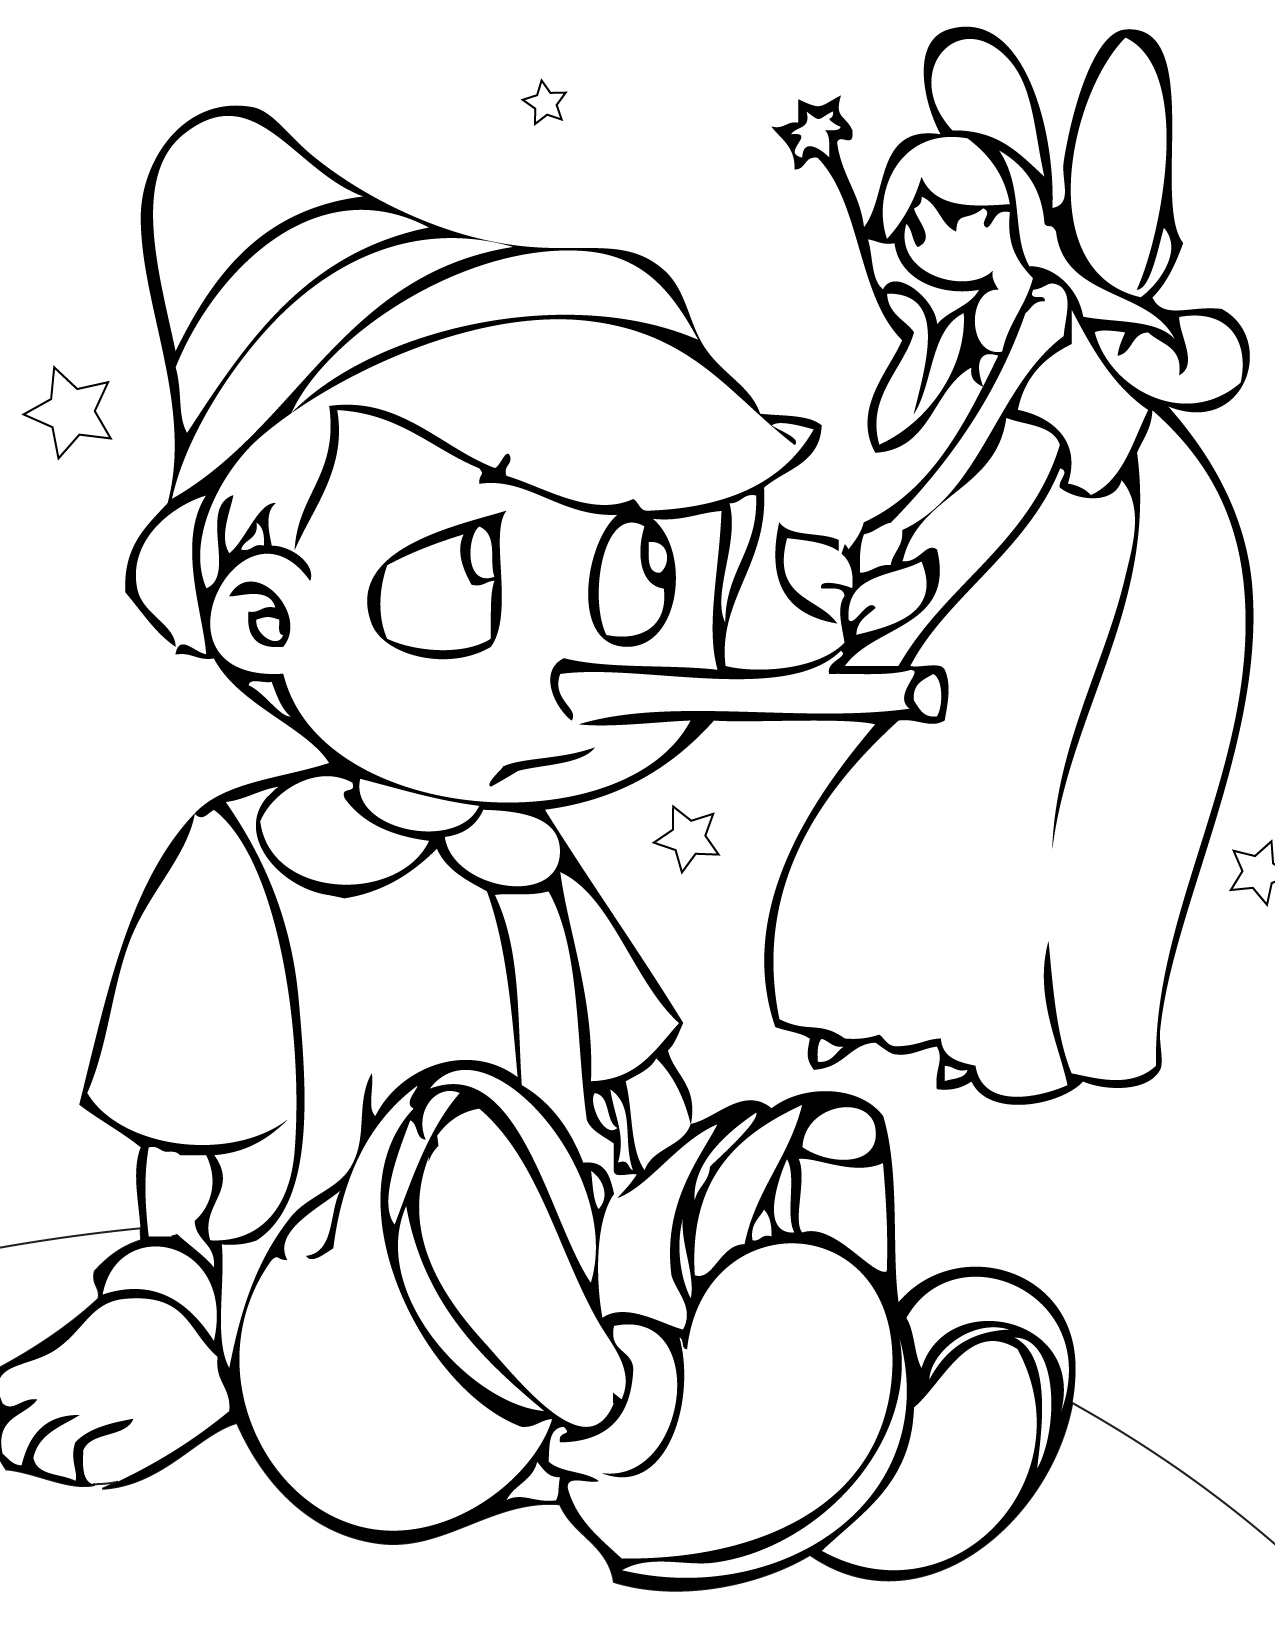 Free Printable Pinocchio Coloring Pages For Kids Free Coloring Pages To Print